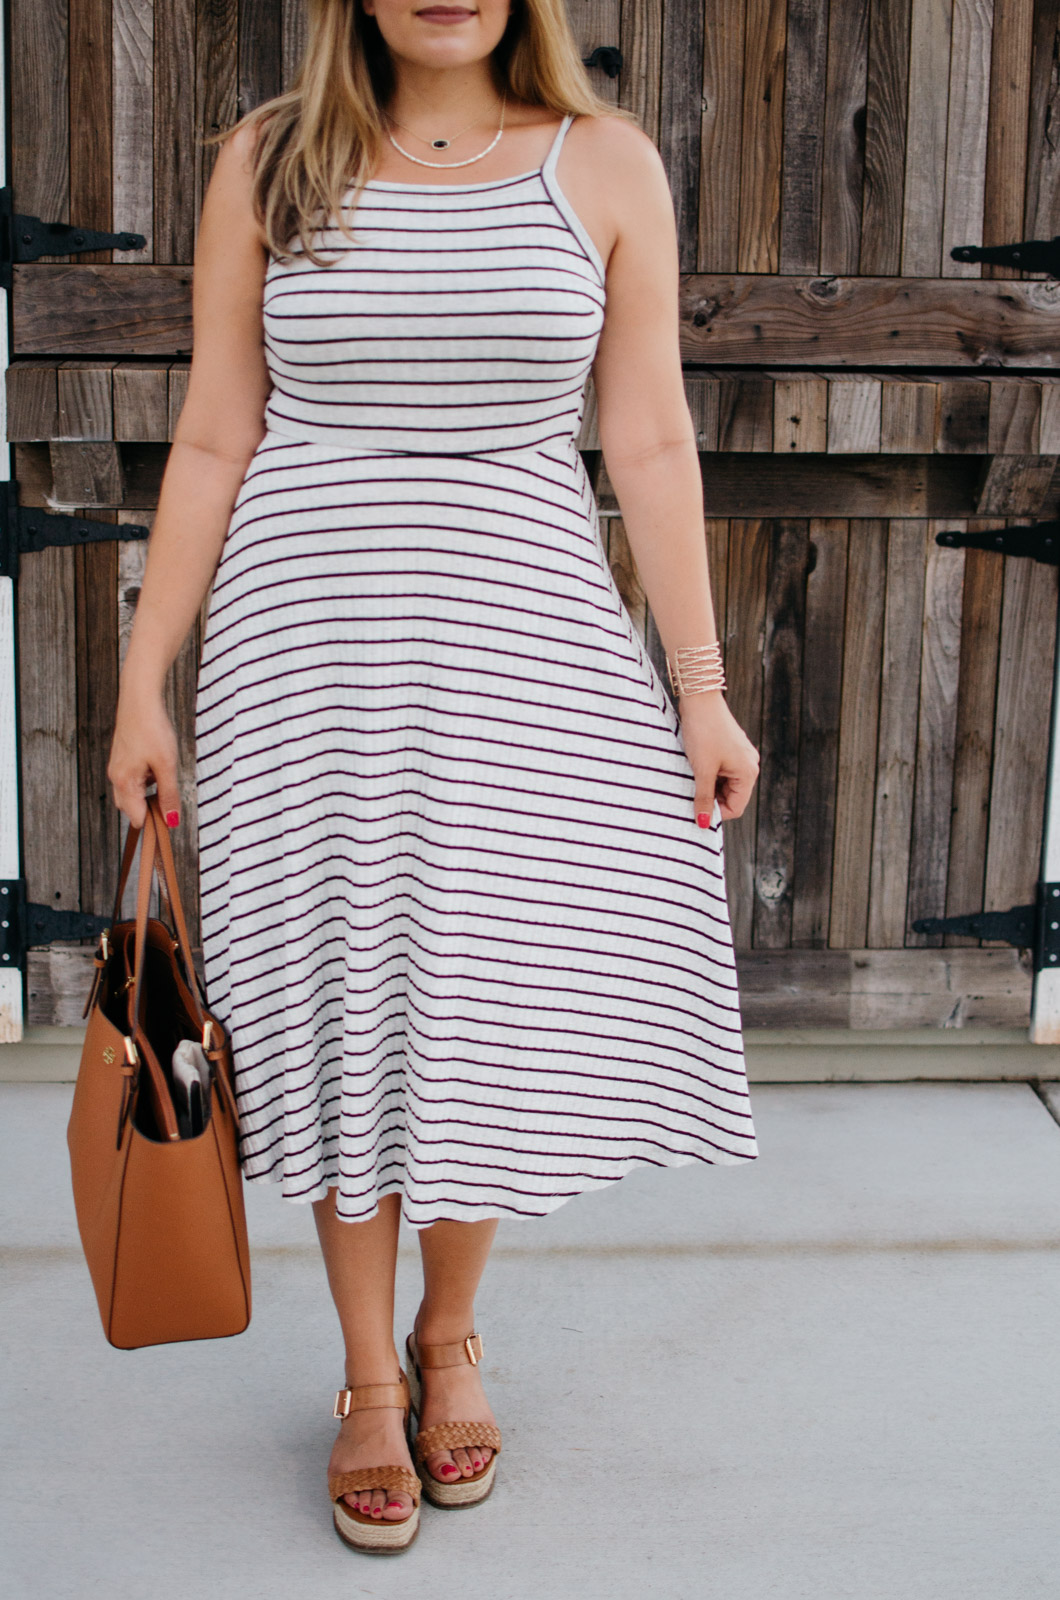 summer stripe midi dress outfit + nordstrom anniversary sale picks for summer | A round-up of all the Nordstrom Anniversary Sale items you can wear now! | bylaurenm.com